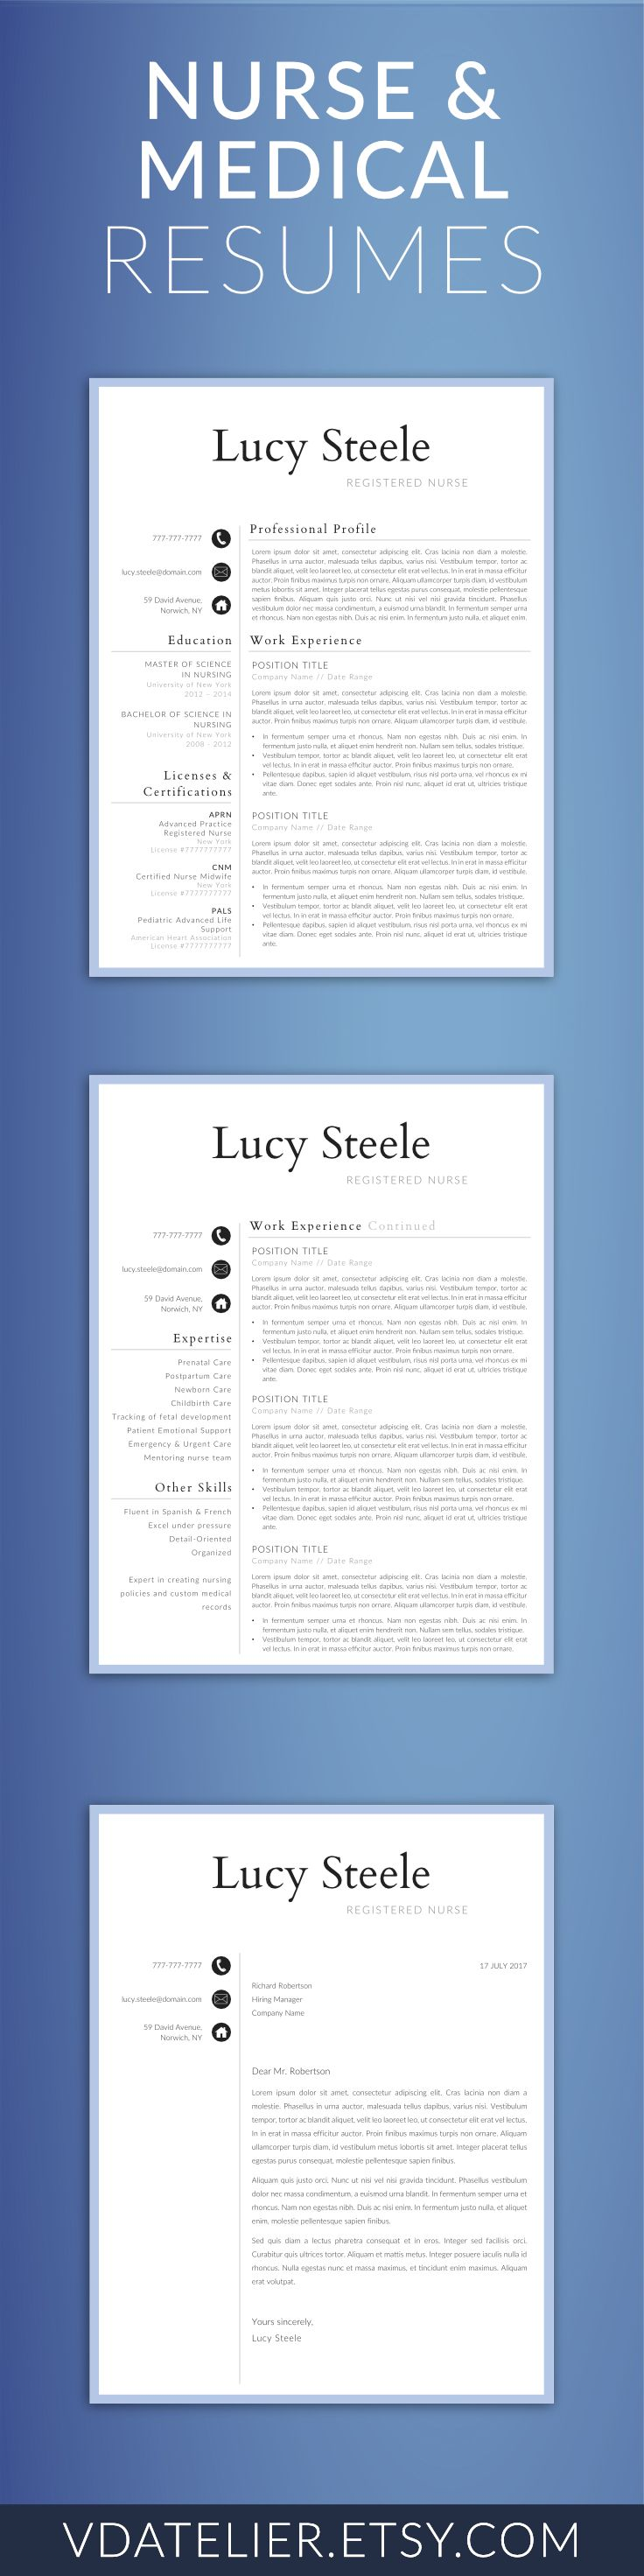 Nurse Resume Template for Word, Doctor Resume Template | Nurse CV Template | RN Resume, Medical Resume | US Letter & A4 | 1,2 Page Resume